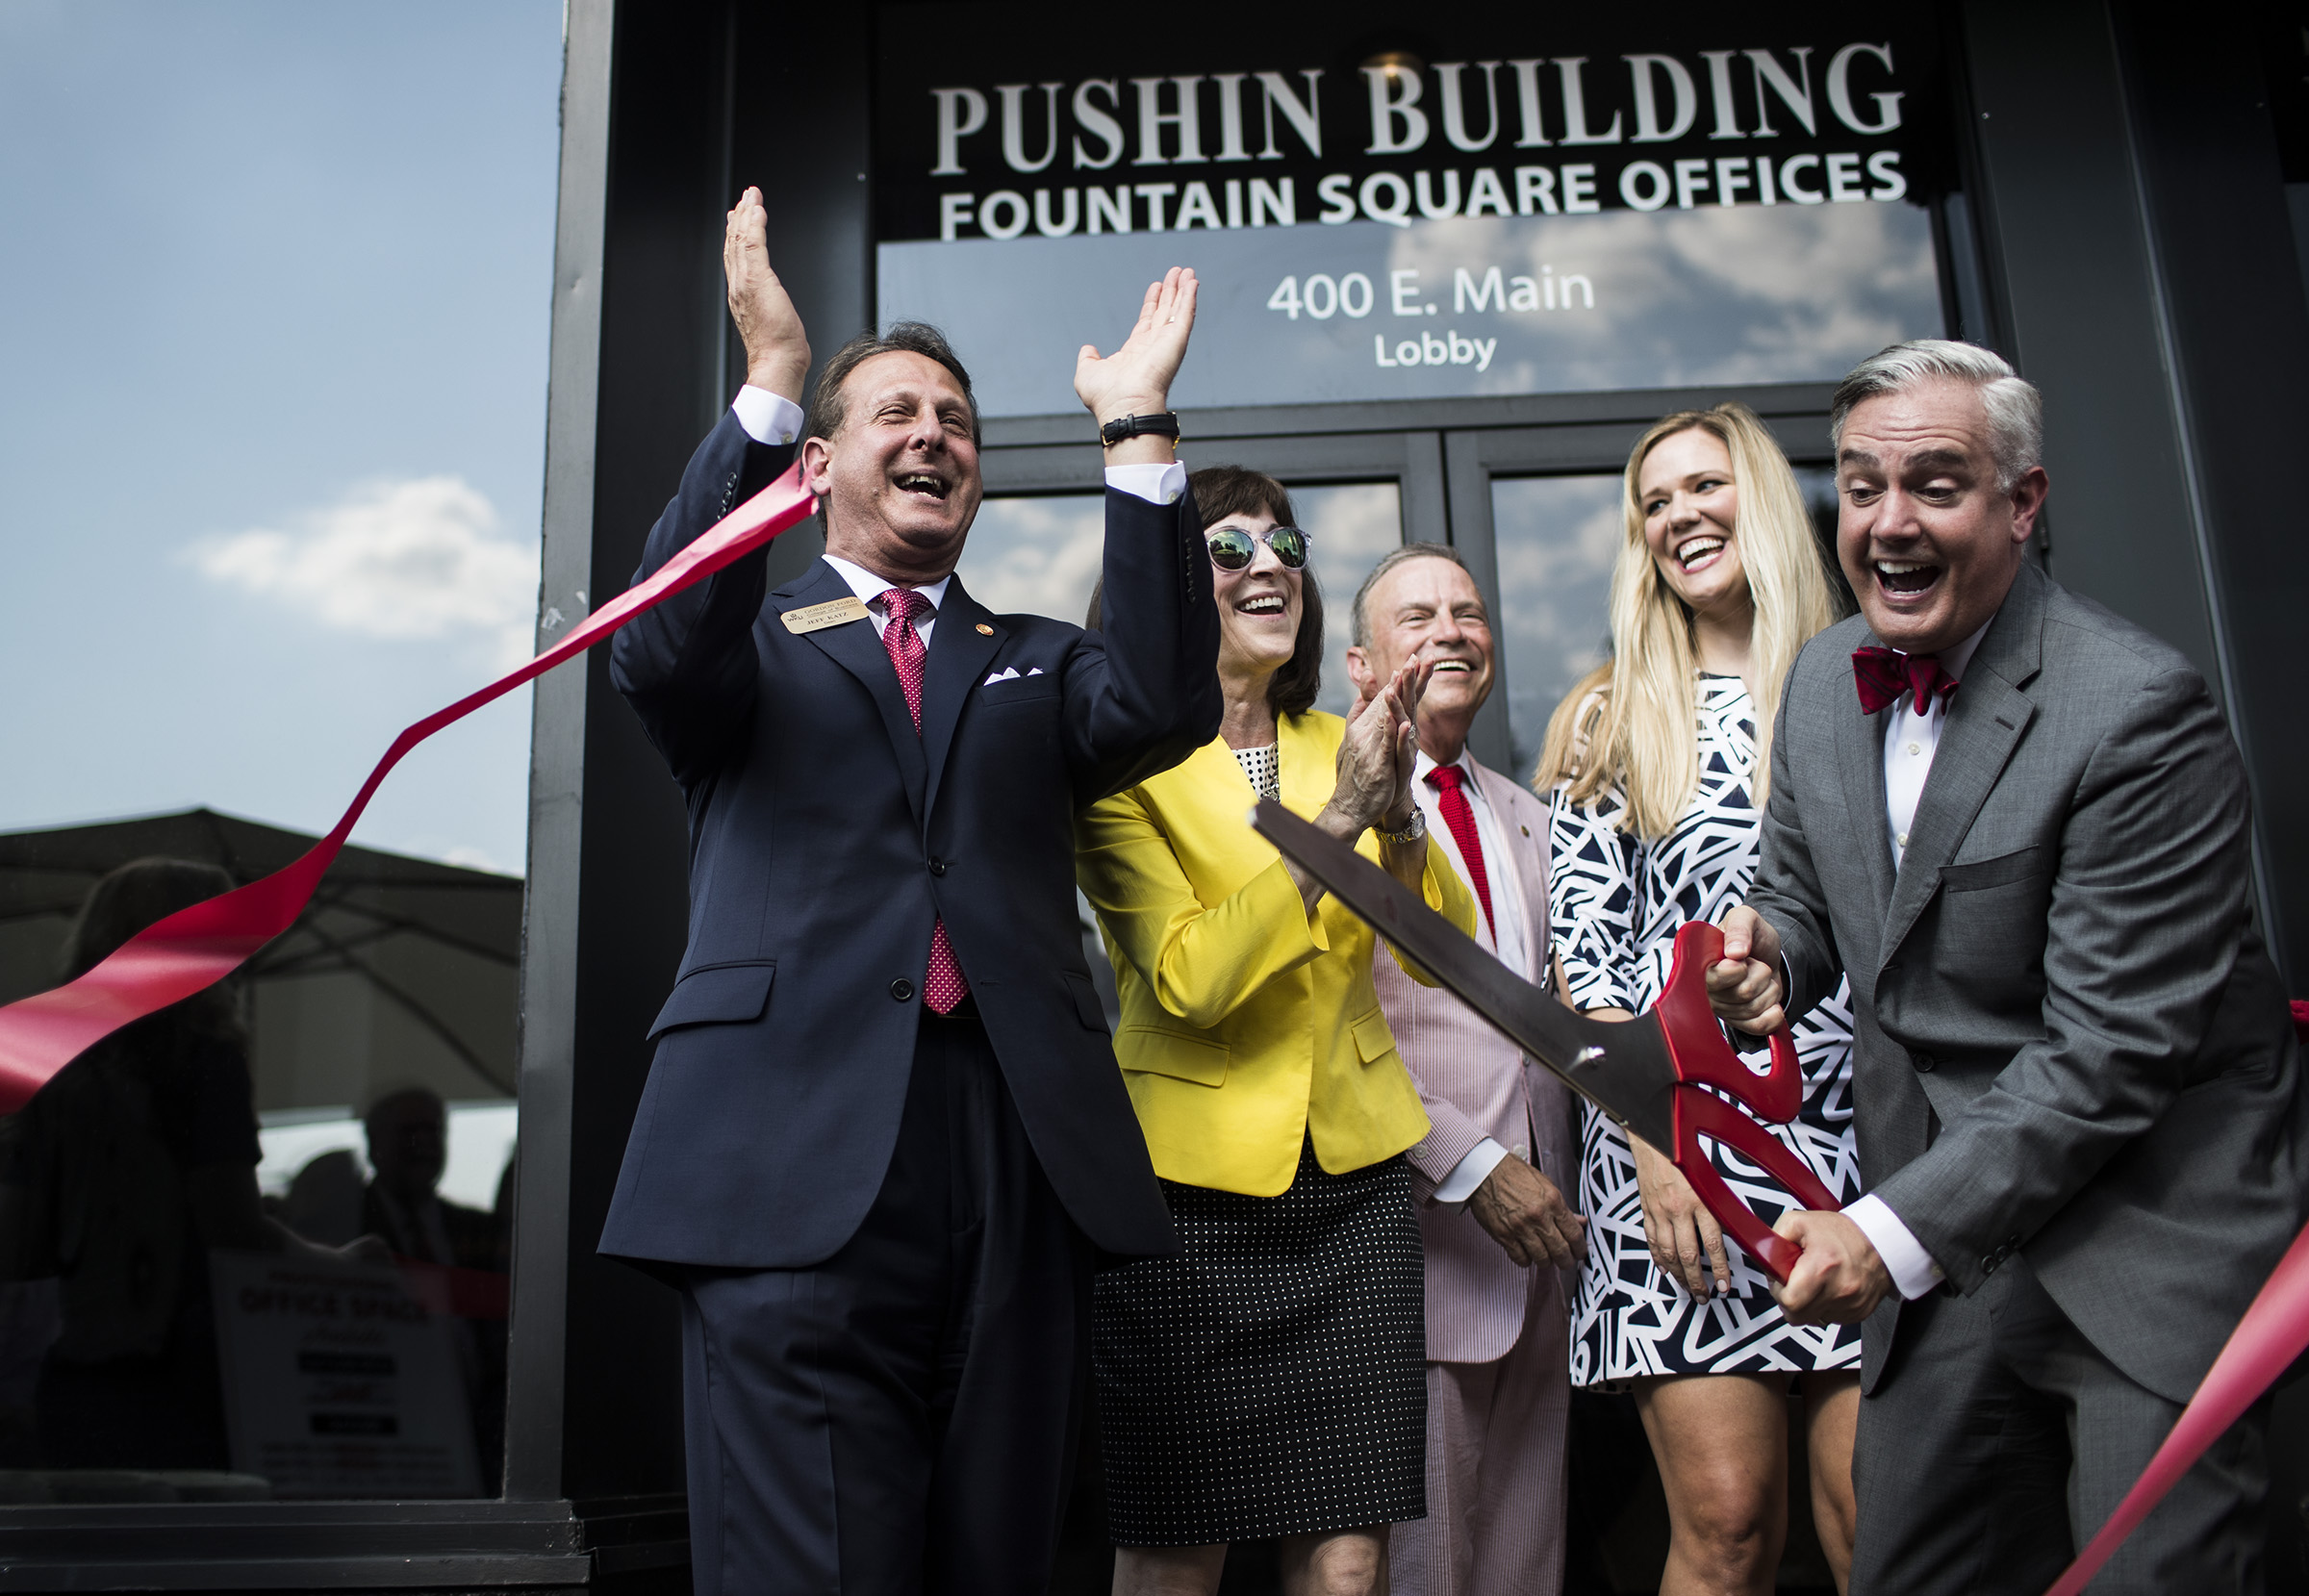 From left, Gordon Ford College of Business dean Jeff Katz, Carolyn Ridley, WKU regent John Ridley, Kacy Caboni, and WKU president Timothy Caboni cut the ribbon for the opening of the Gordon Ford College of Business location in the Pushin Building on Tuesday, August 8, 2017, on the square in downtown Bowling Green.